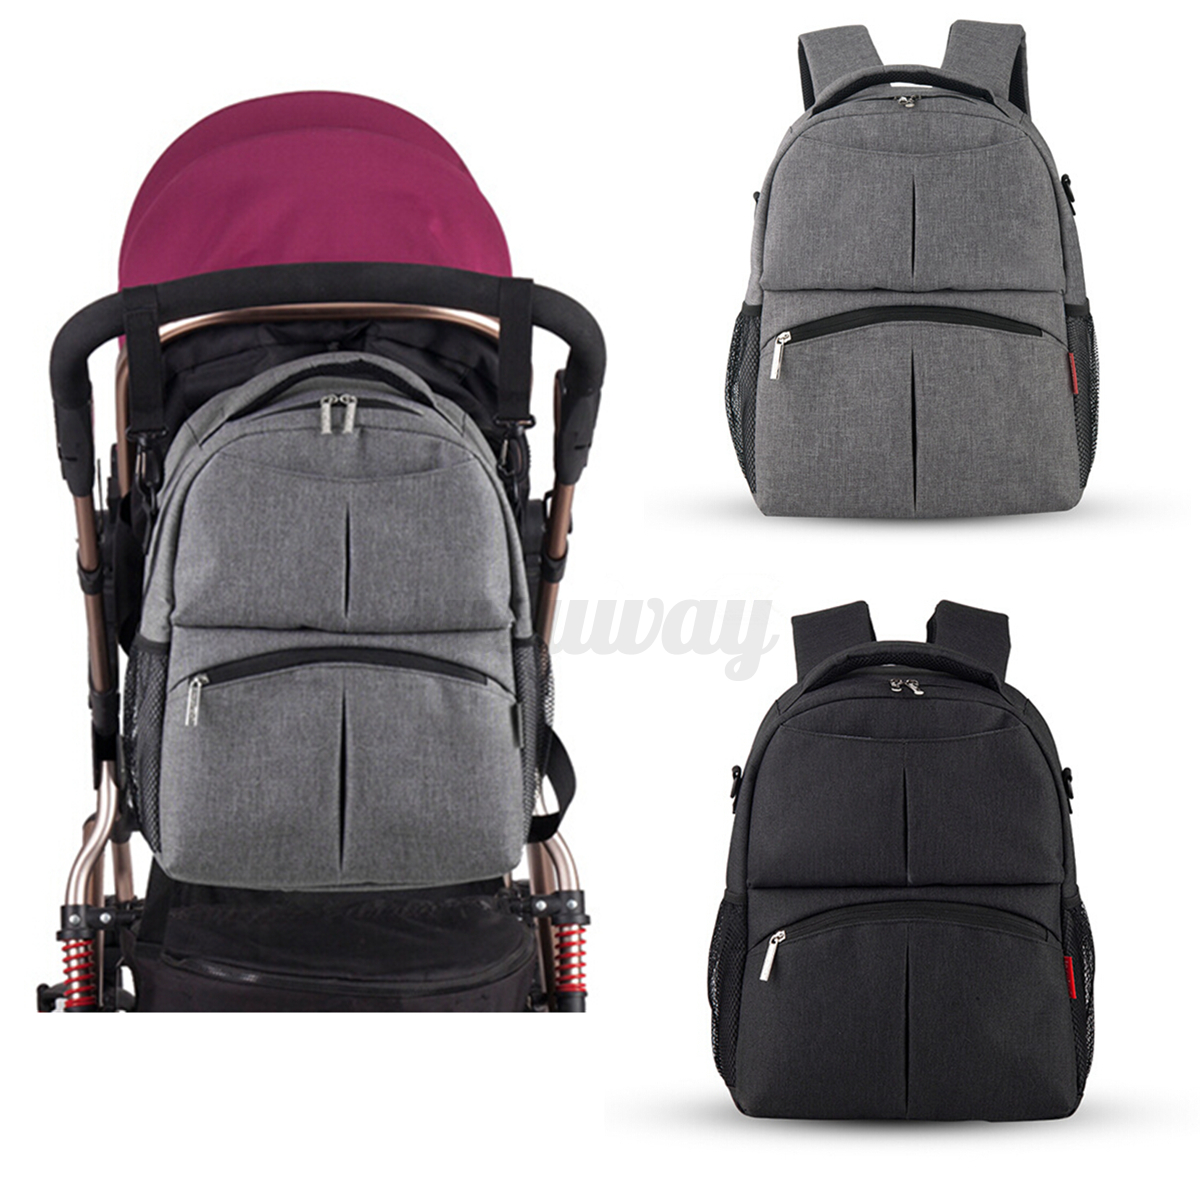 multifunctional baby diaper backpack mummy bag nappy changing travel backpack au ebay. Black Bedroom Furniture Sets. Home Design Ideas